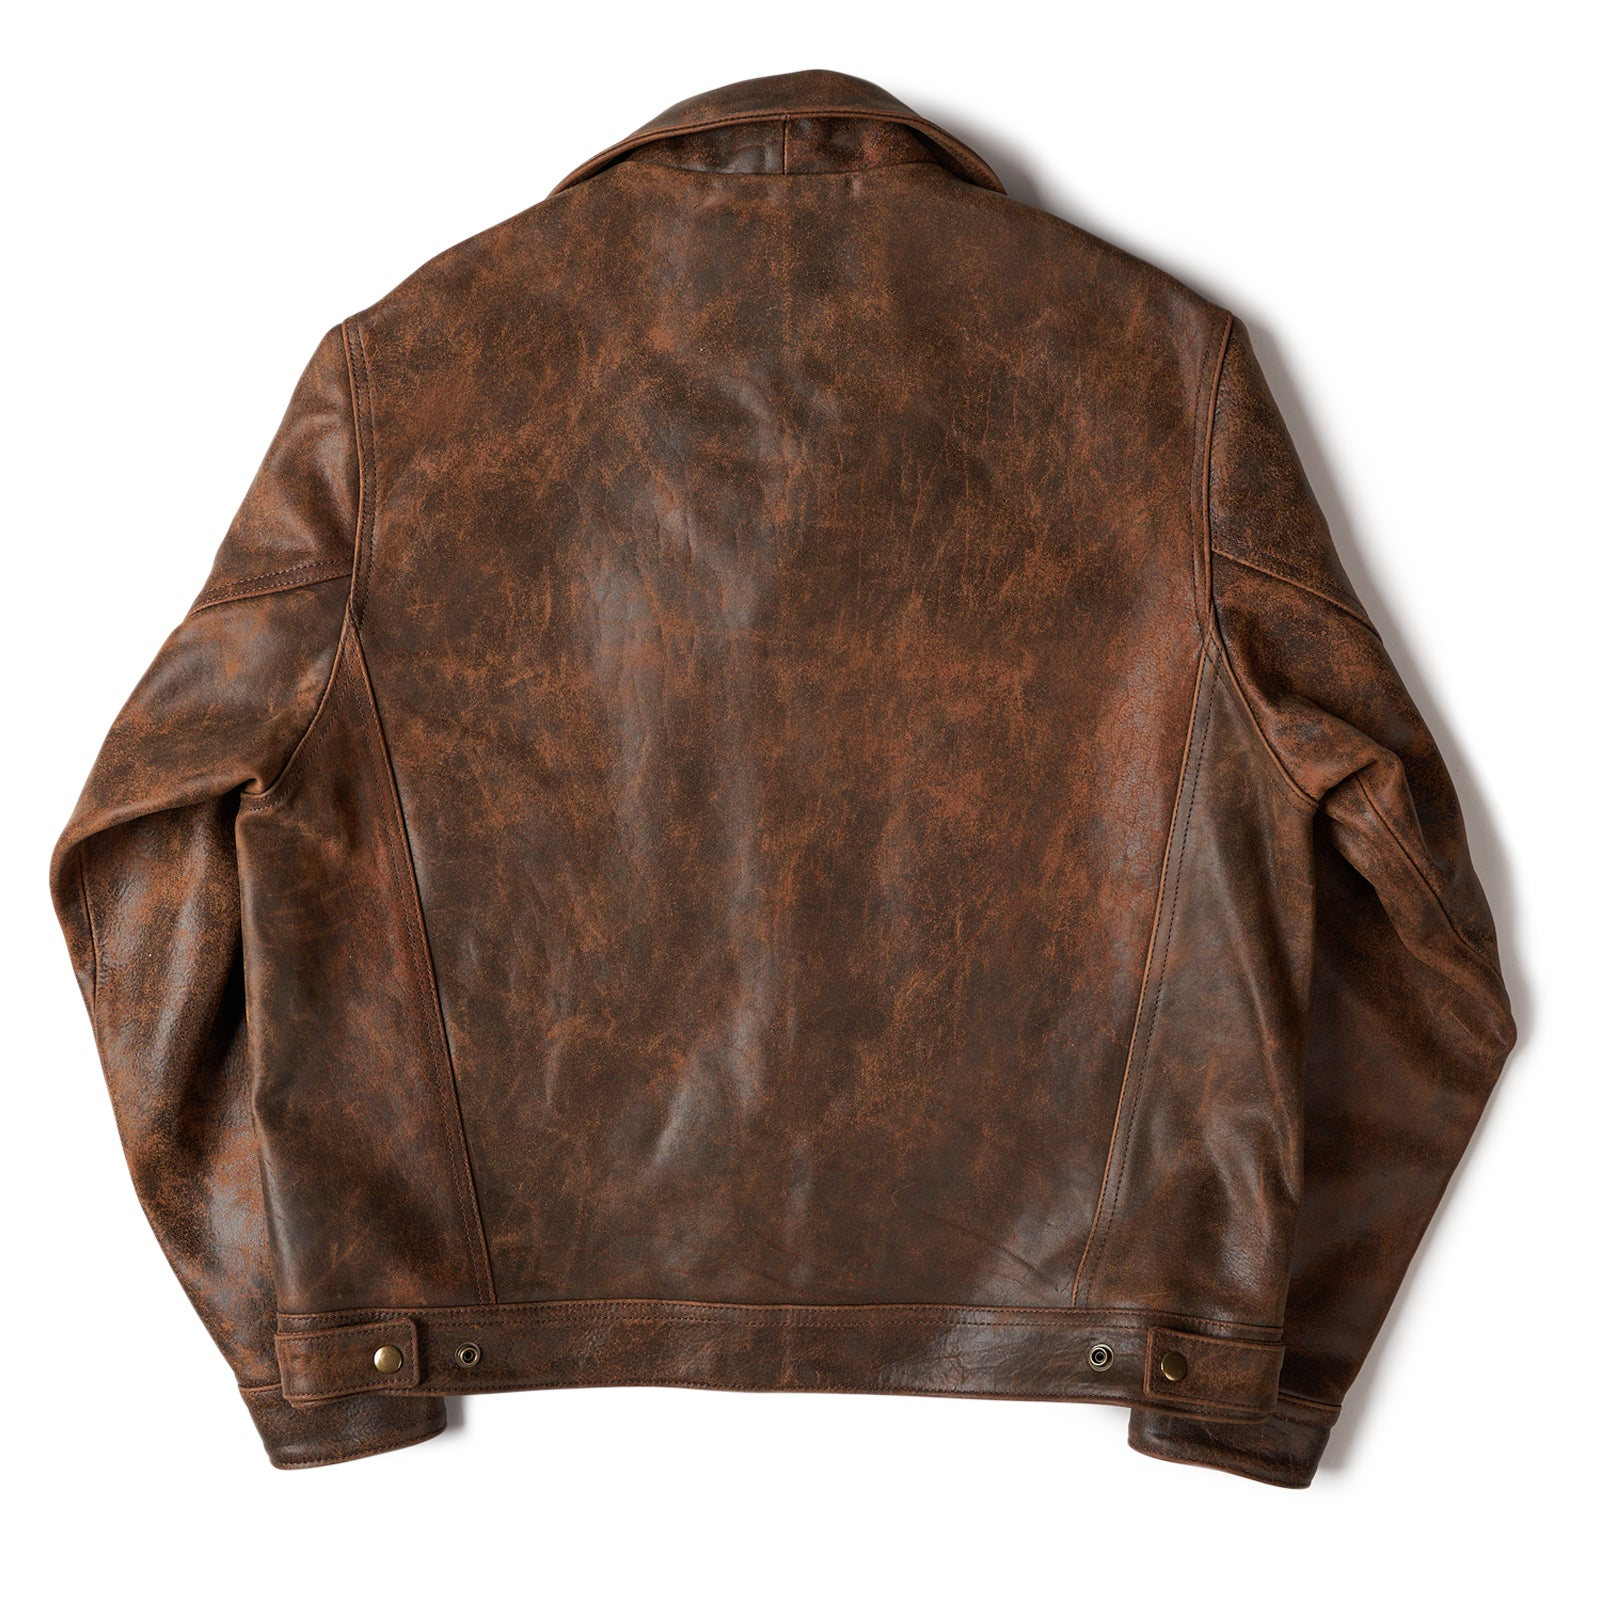 Indy Bison Jacket